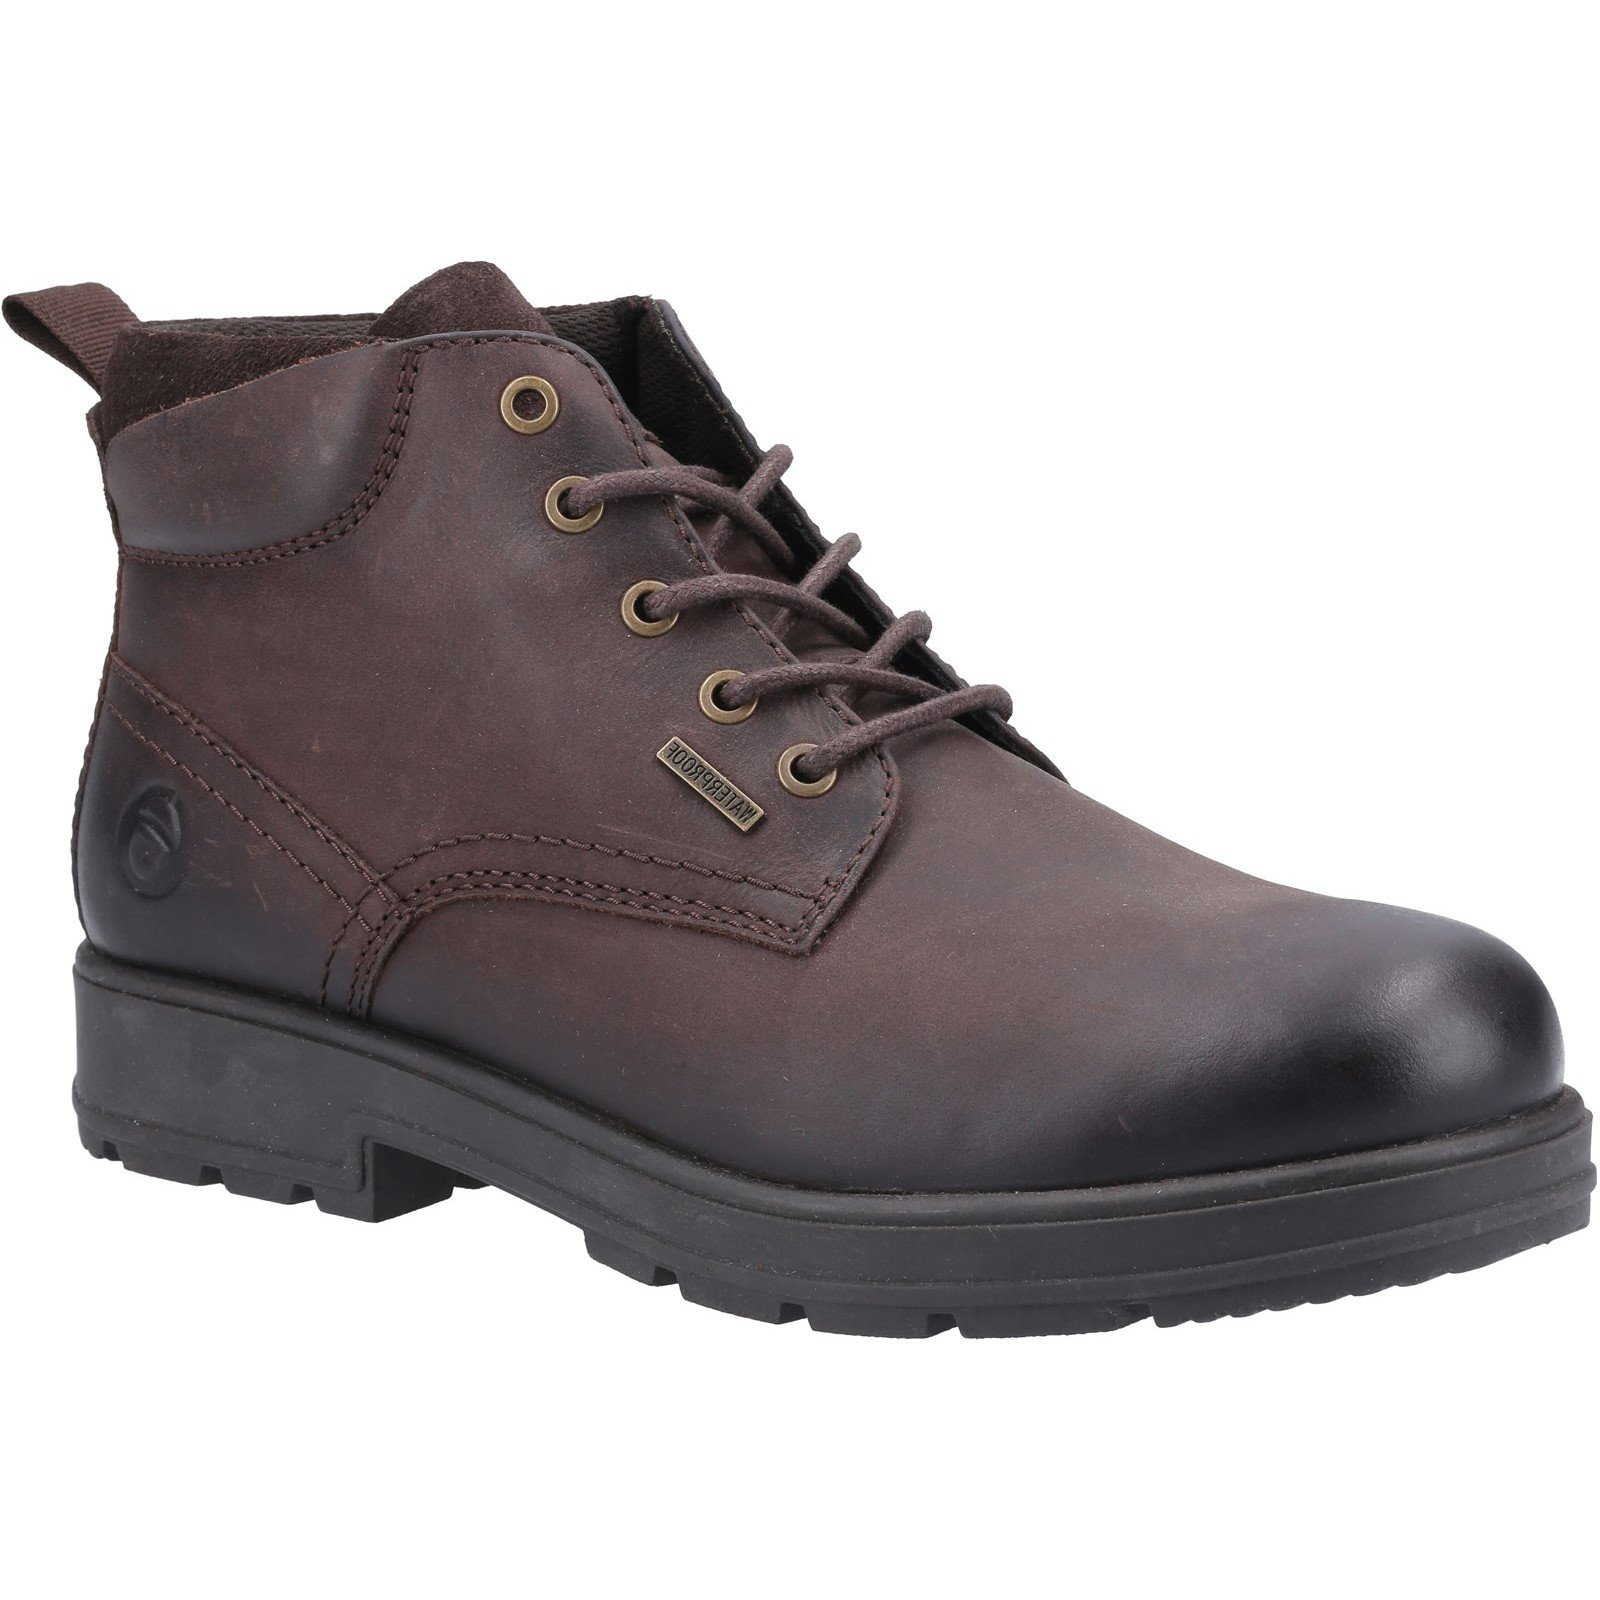 Cotswold Men's Winson Lace Up Boots Brown 32966 - Brown 6